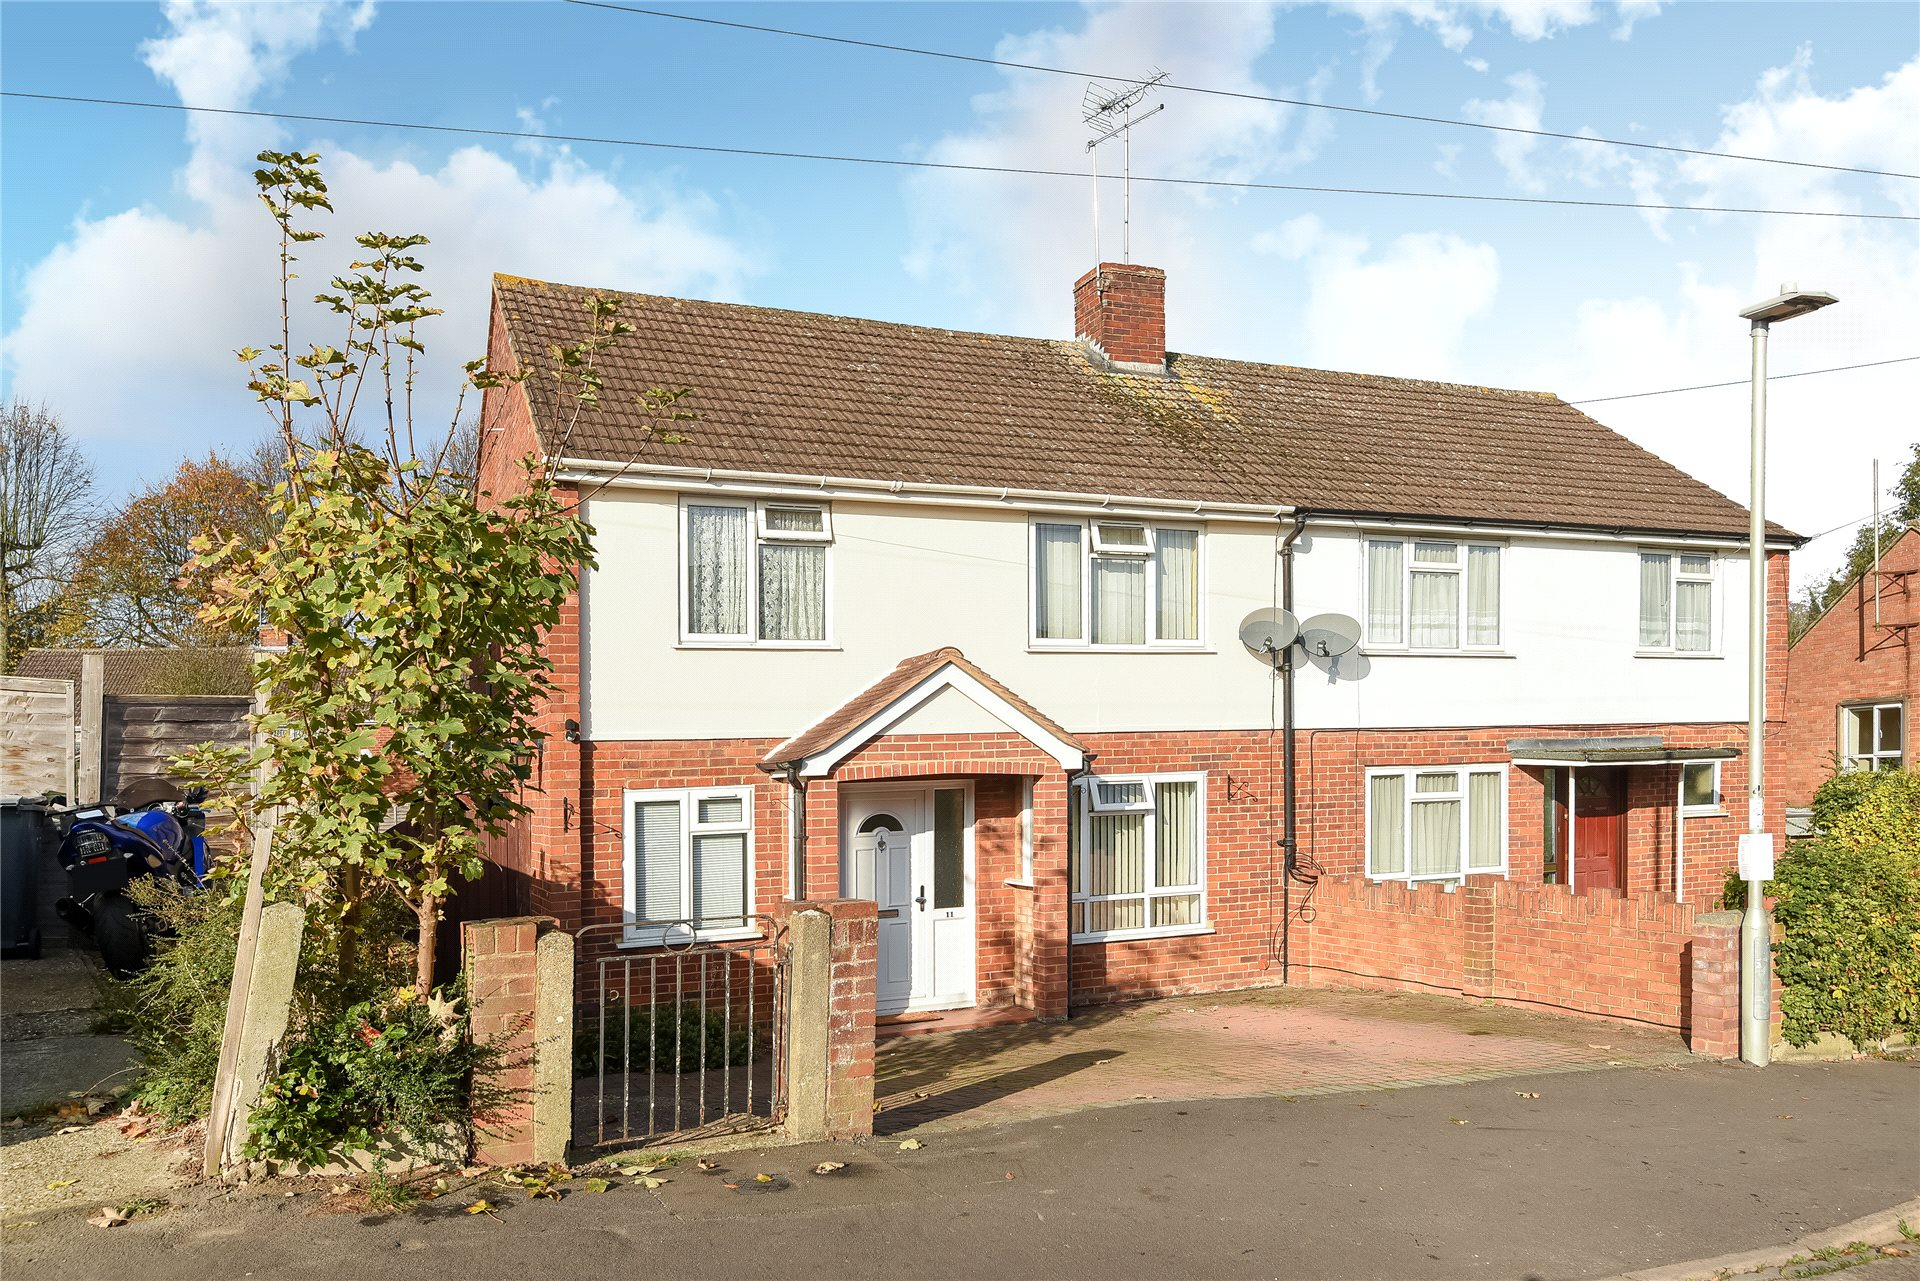 3 Bedrooms Semi Detached House for sale in Carsdale Close, Reading, Berkshire, RG1